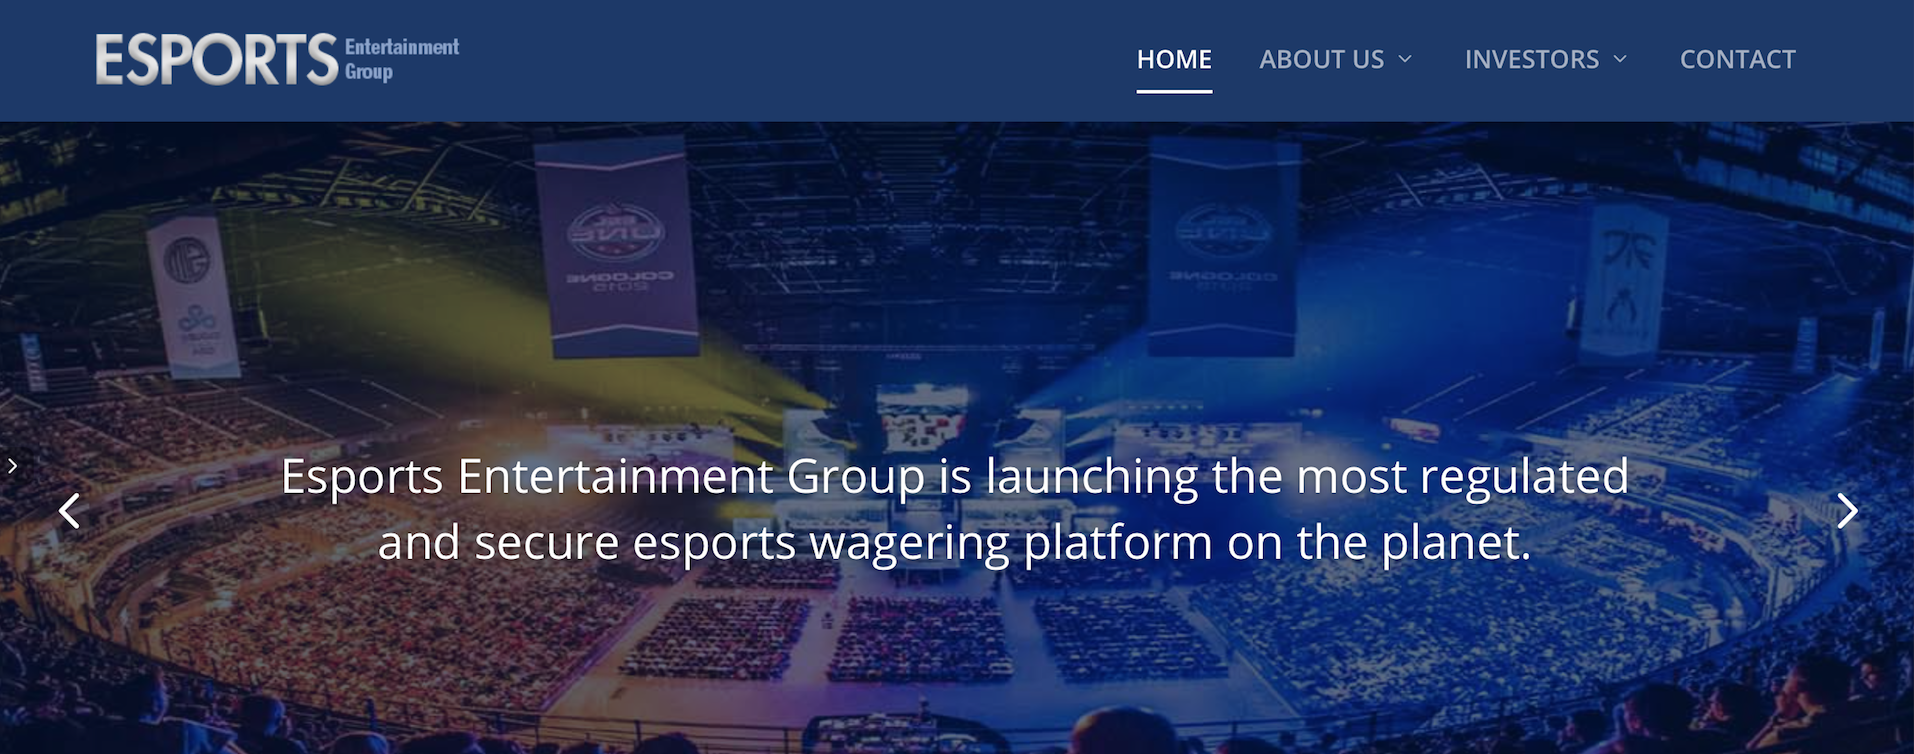 Esports Entertainment Group (Photo: Esports Entertainment Group)